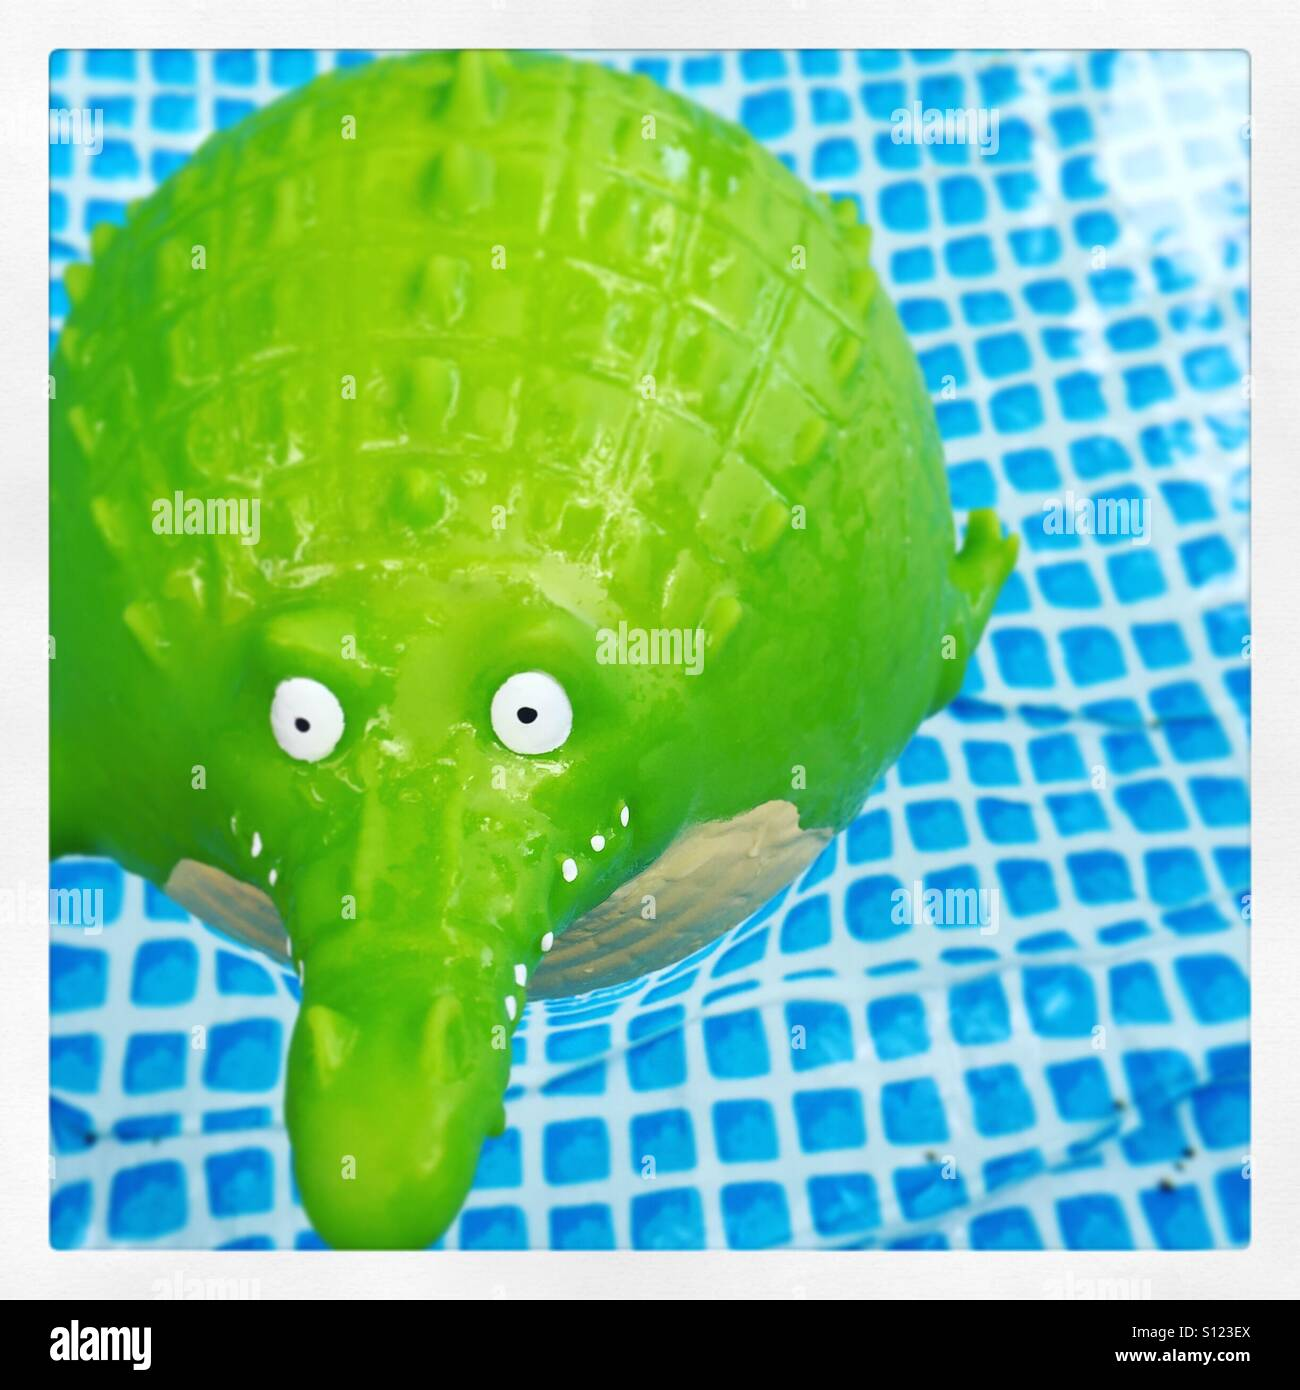 Croc In the pool - Stock Image